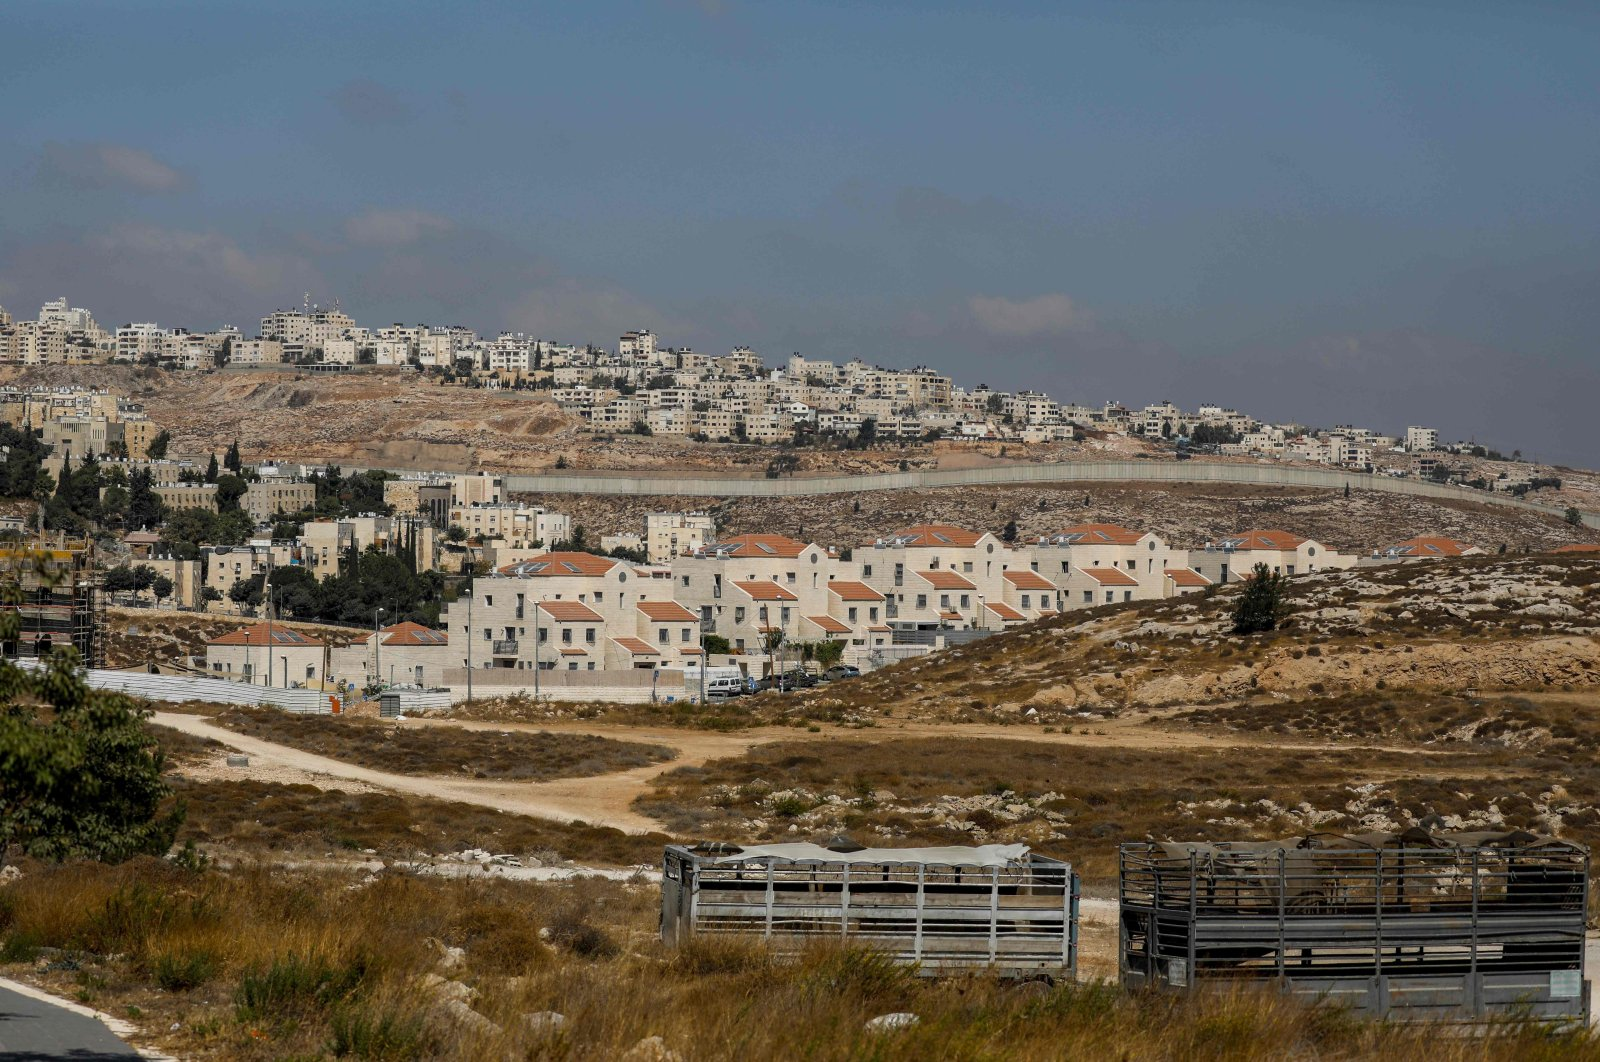 Israel's controversial concrete barrier separates the Jewish settlement of Neve Yaakov in the northern part of east Jerusalem and the Palestinian area of al-Ram in the occupied West Bank, Oct. 14, 2020. (AFP Photo)